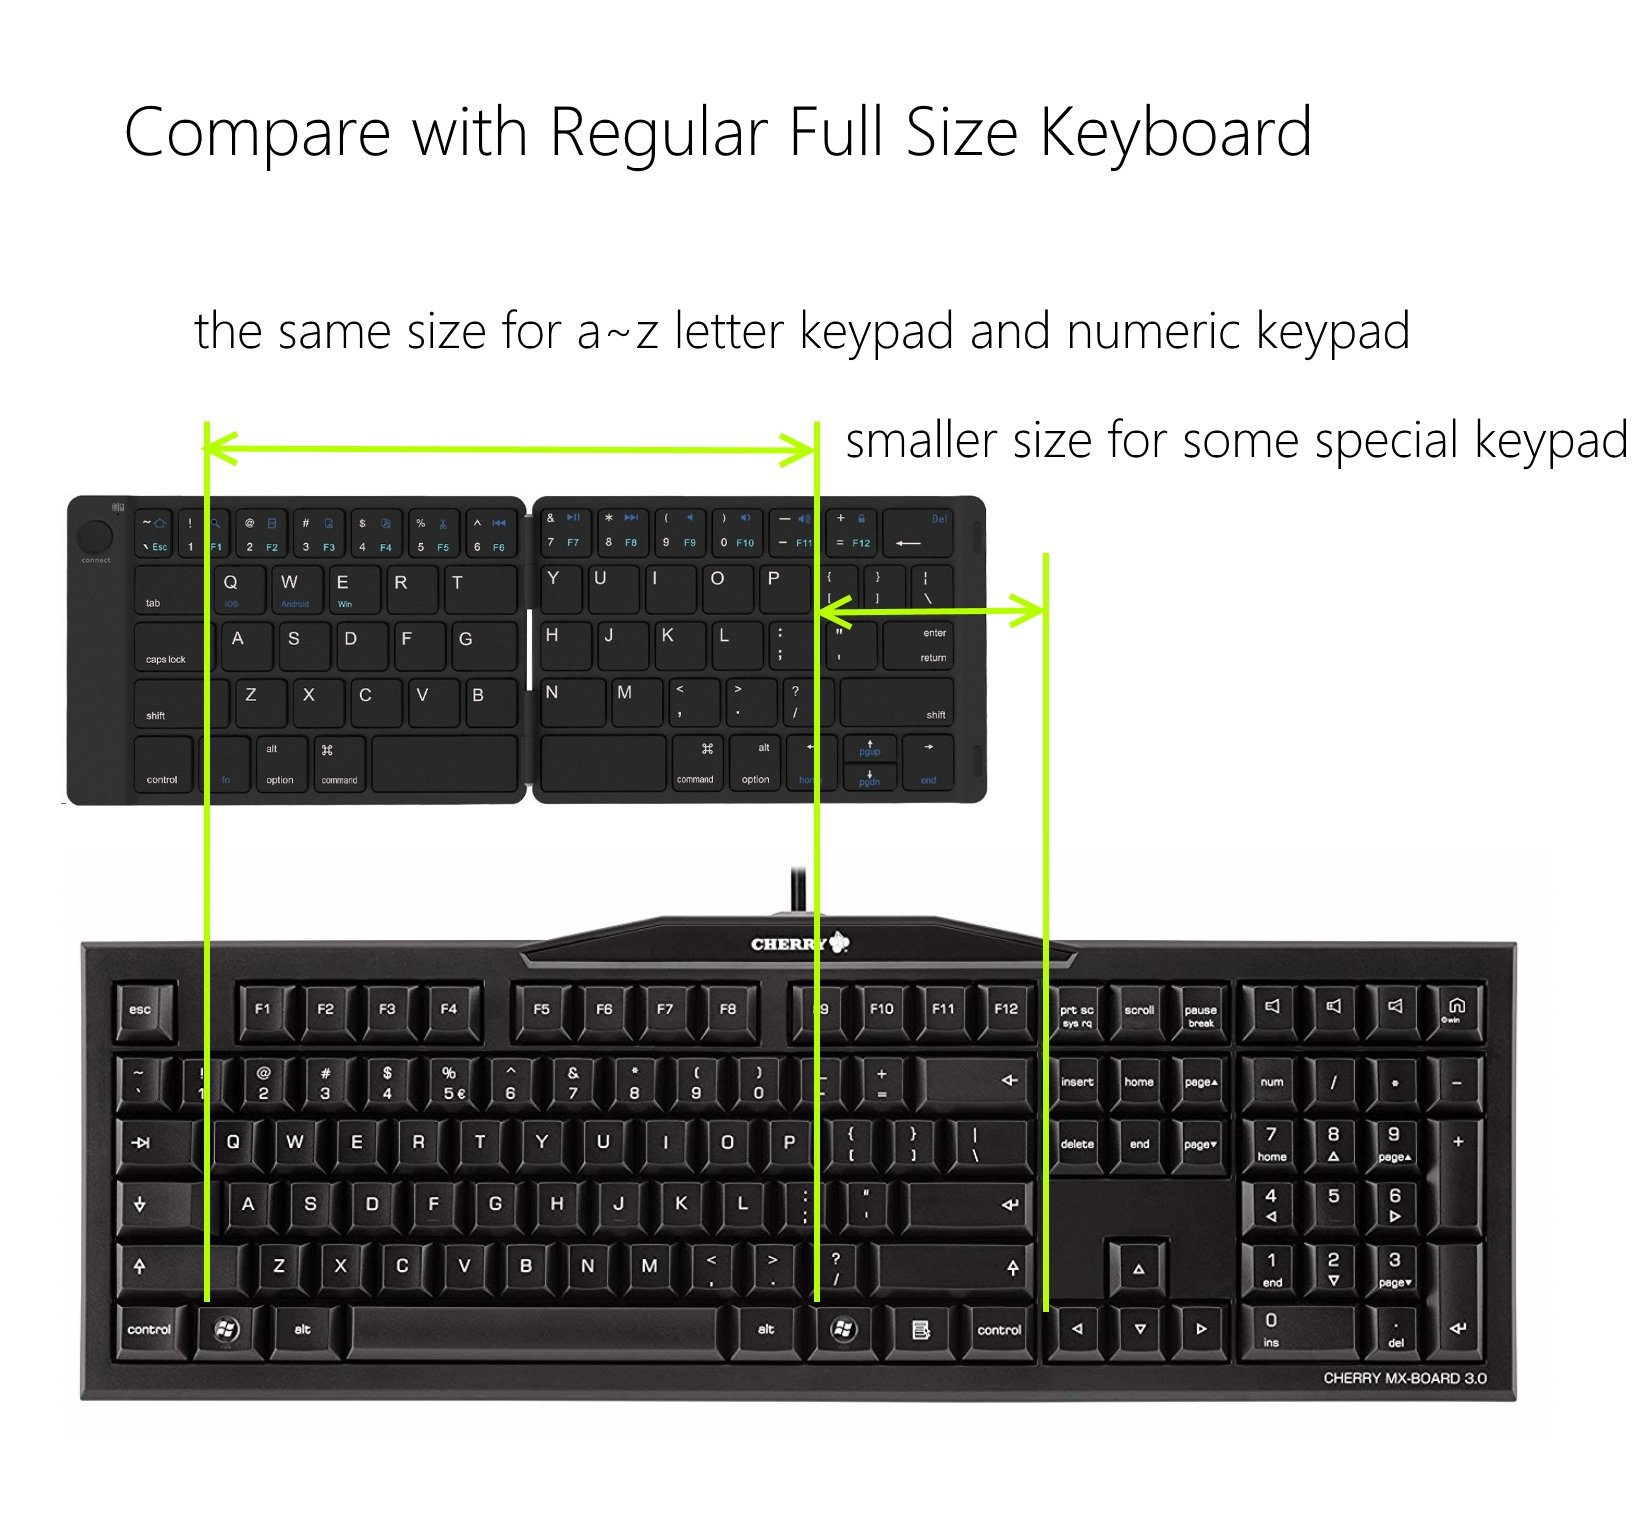 Bluetooth Folding Keyboard Foldable Bluetooth Keyboard Rechargable Full Size Folable Keyboard for IOS Phone Android Smartphone Tablet Windows Laptop by Joyzy (Image #4)